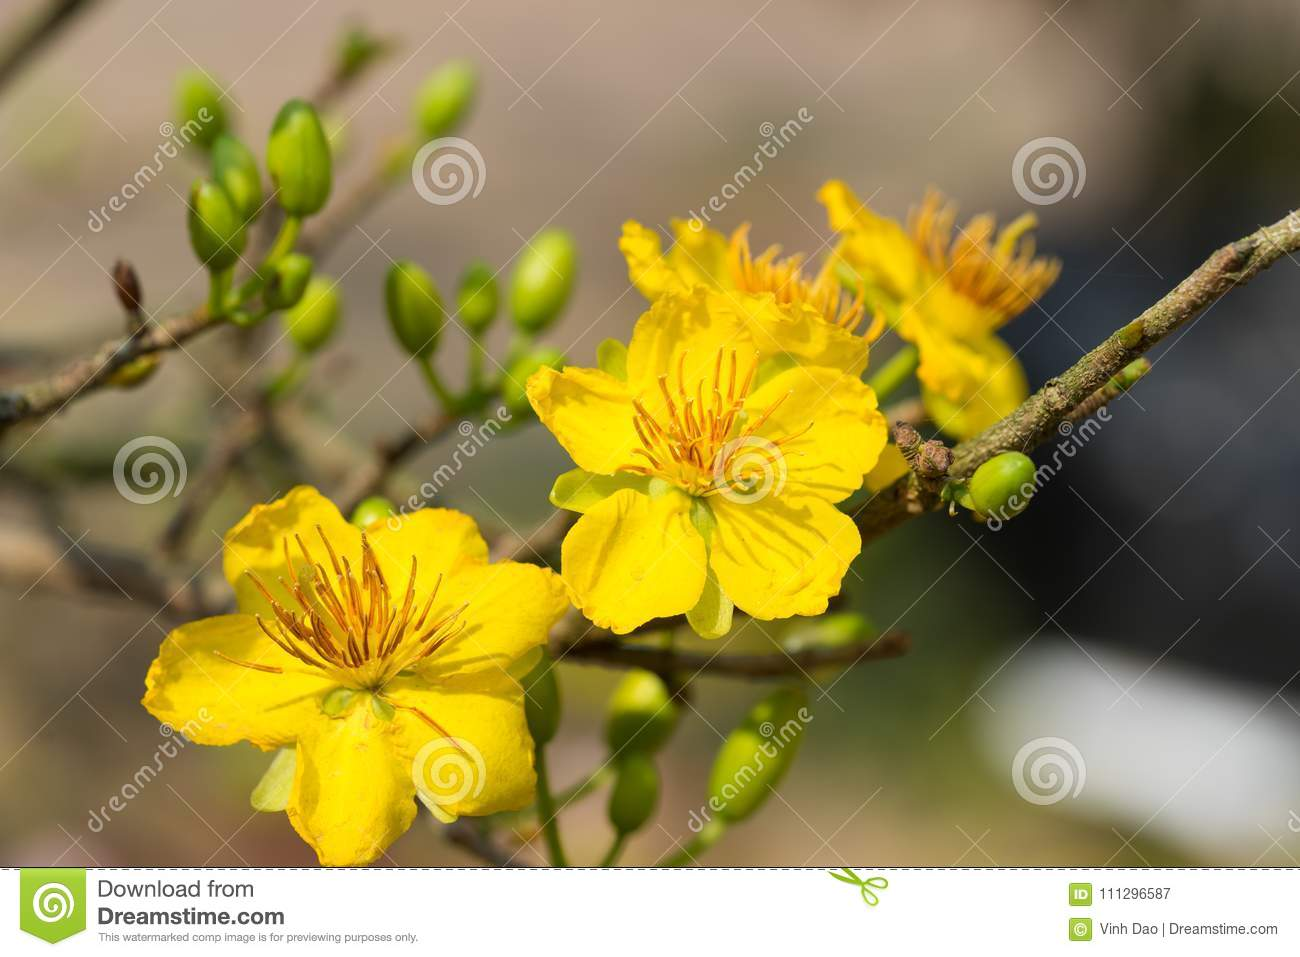 Yellow flower means image collections flower decoration ideas yellow flower means choice image flower decoration ideas yellow flower means choice image flower decoration ideas mightylinksfo Images